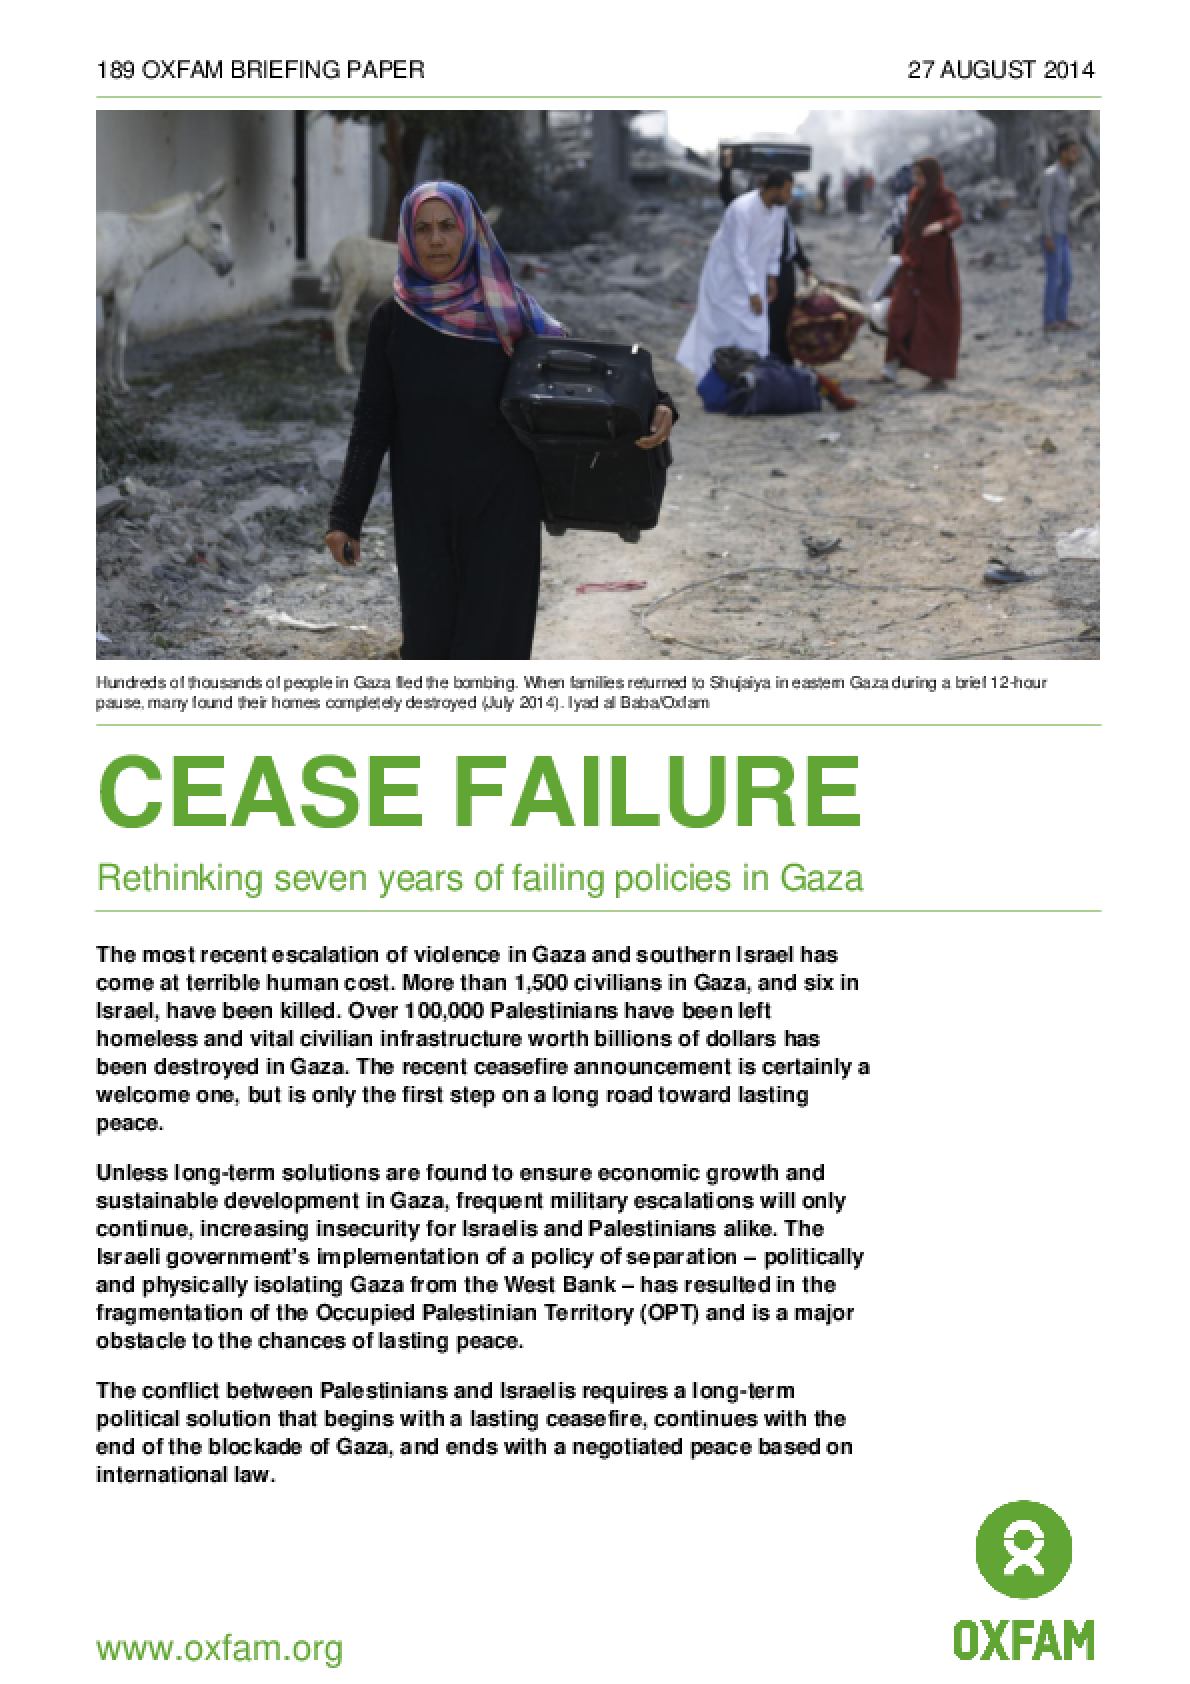 Cease Failure: Rethinking seven years of failing policies in Gaza